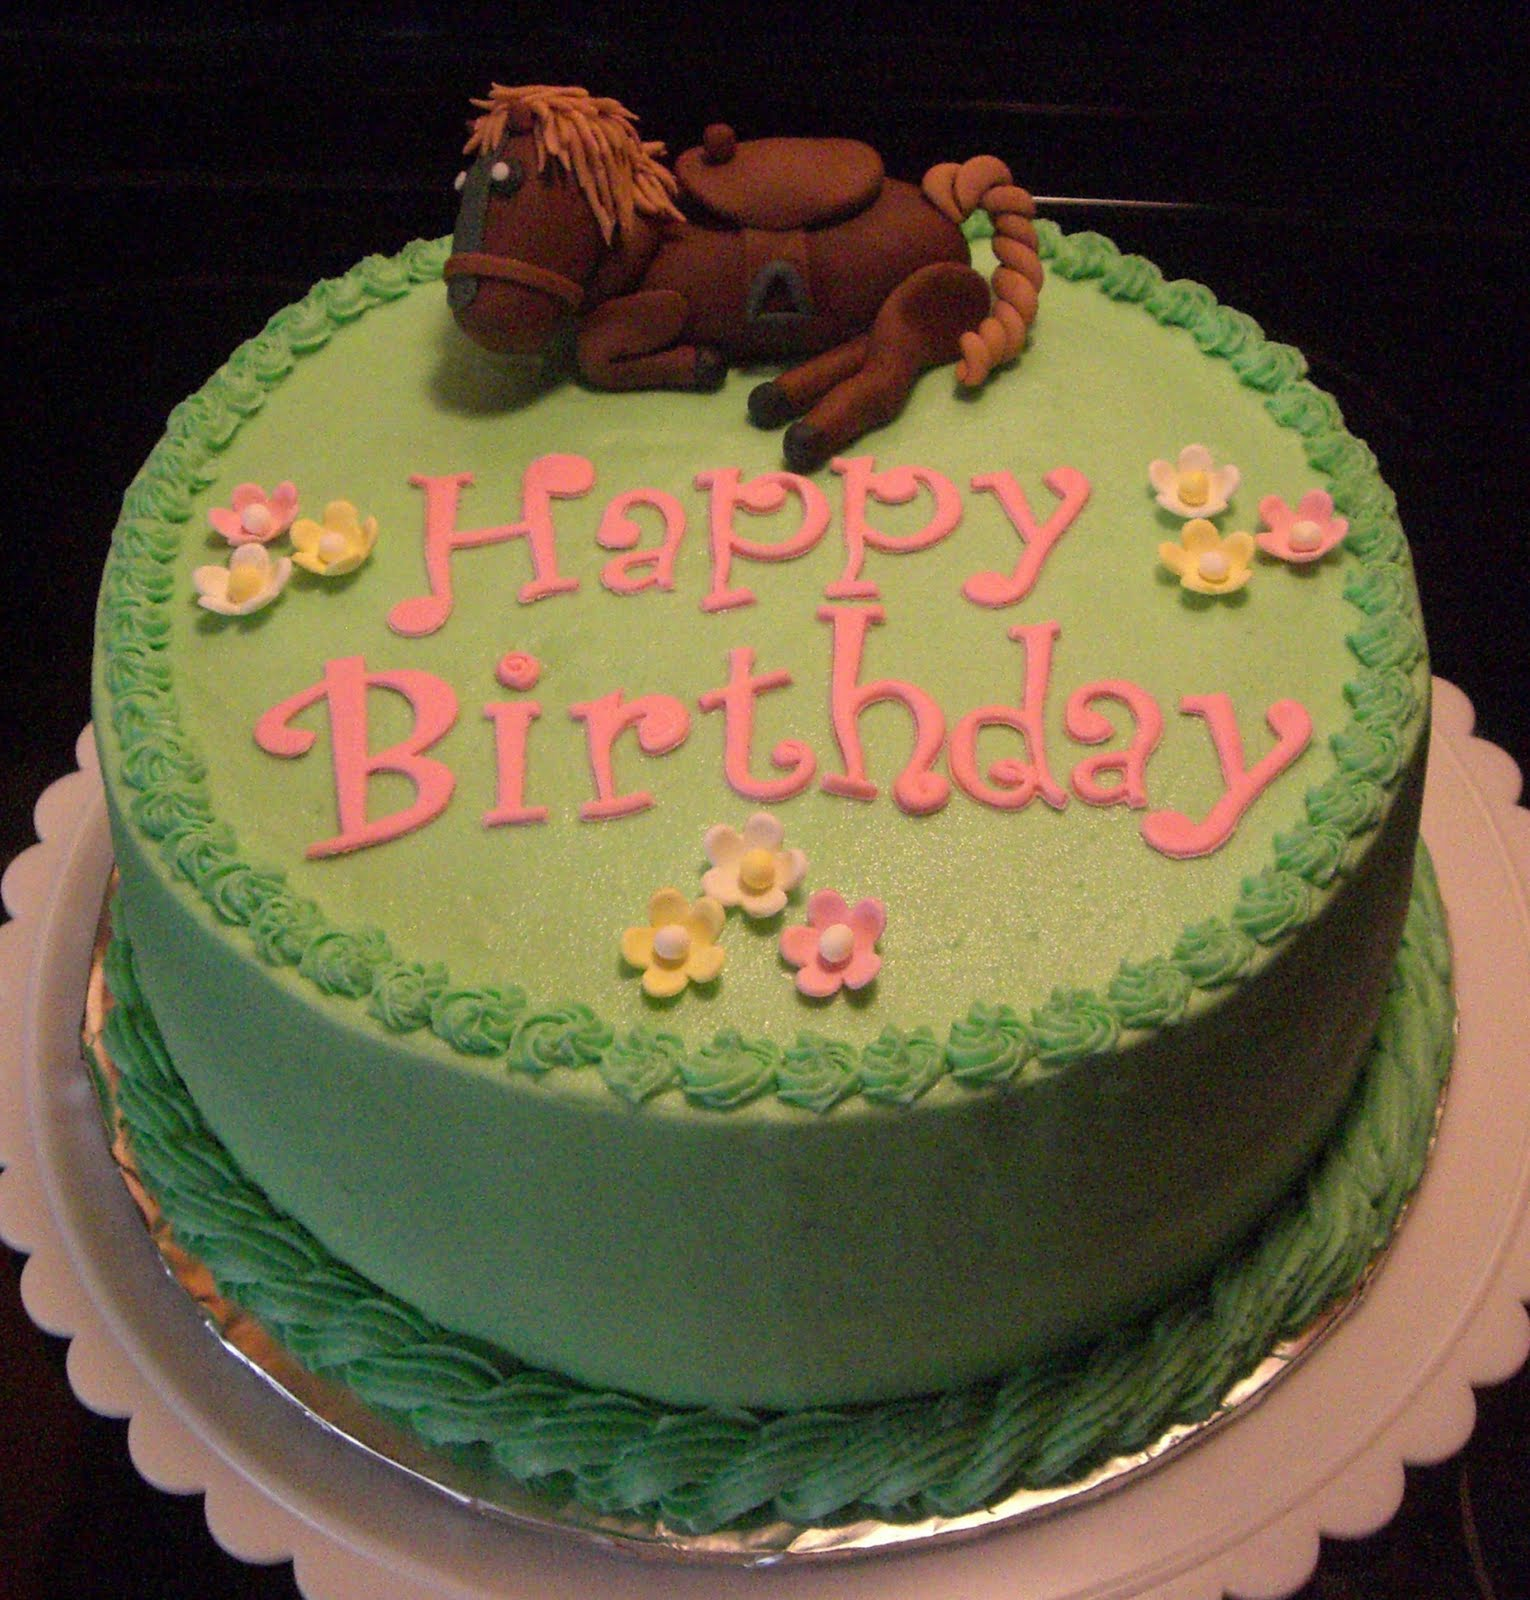 Summers cake place horse lovers birthday cake this is a 9 inch chocolate cake with vanilla buttercream the horse is made out of fondant and the flowers are made out of gum izmirmasajfo